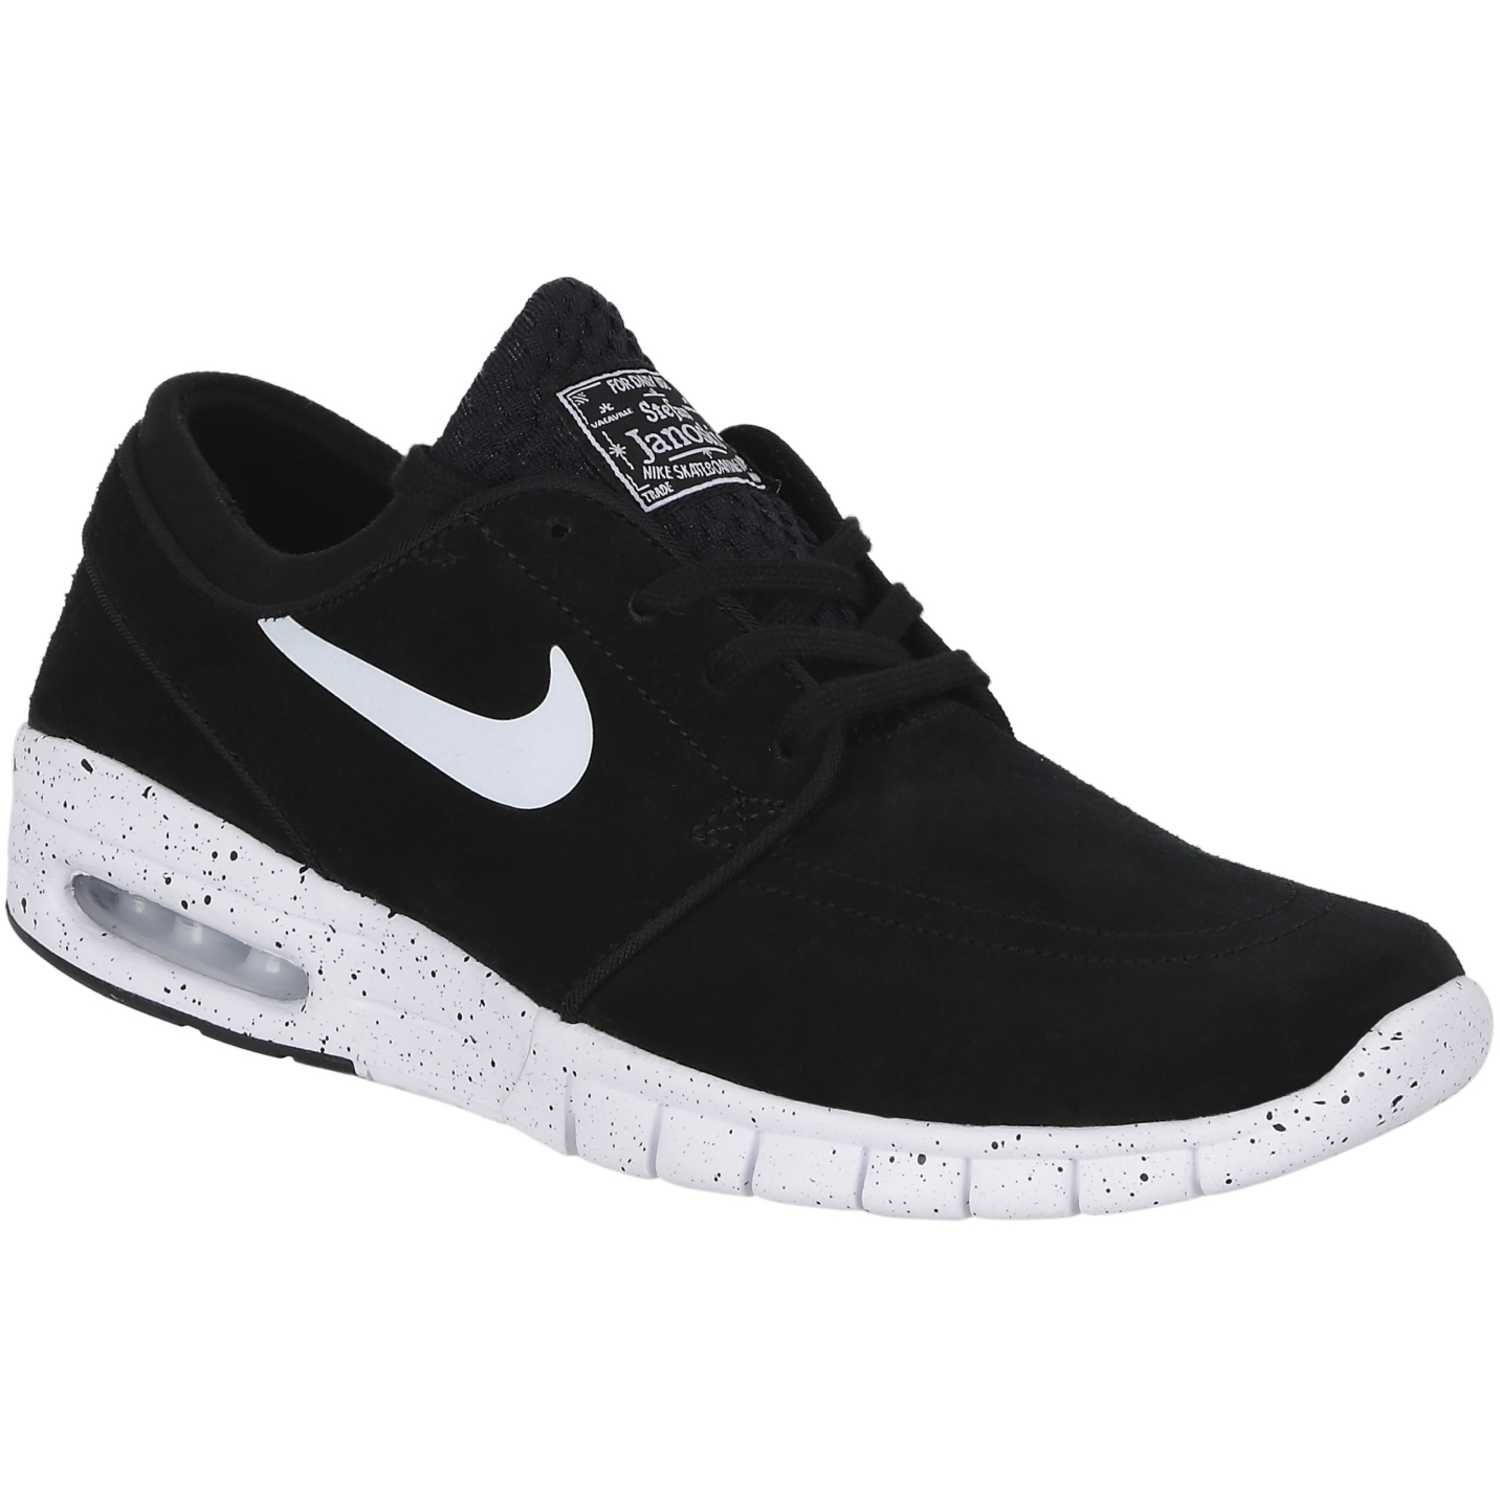 huge selection of f4036 dc341 Zapatilla De Hombre Nike Negro   Blanco Stefan Janoski Max L